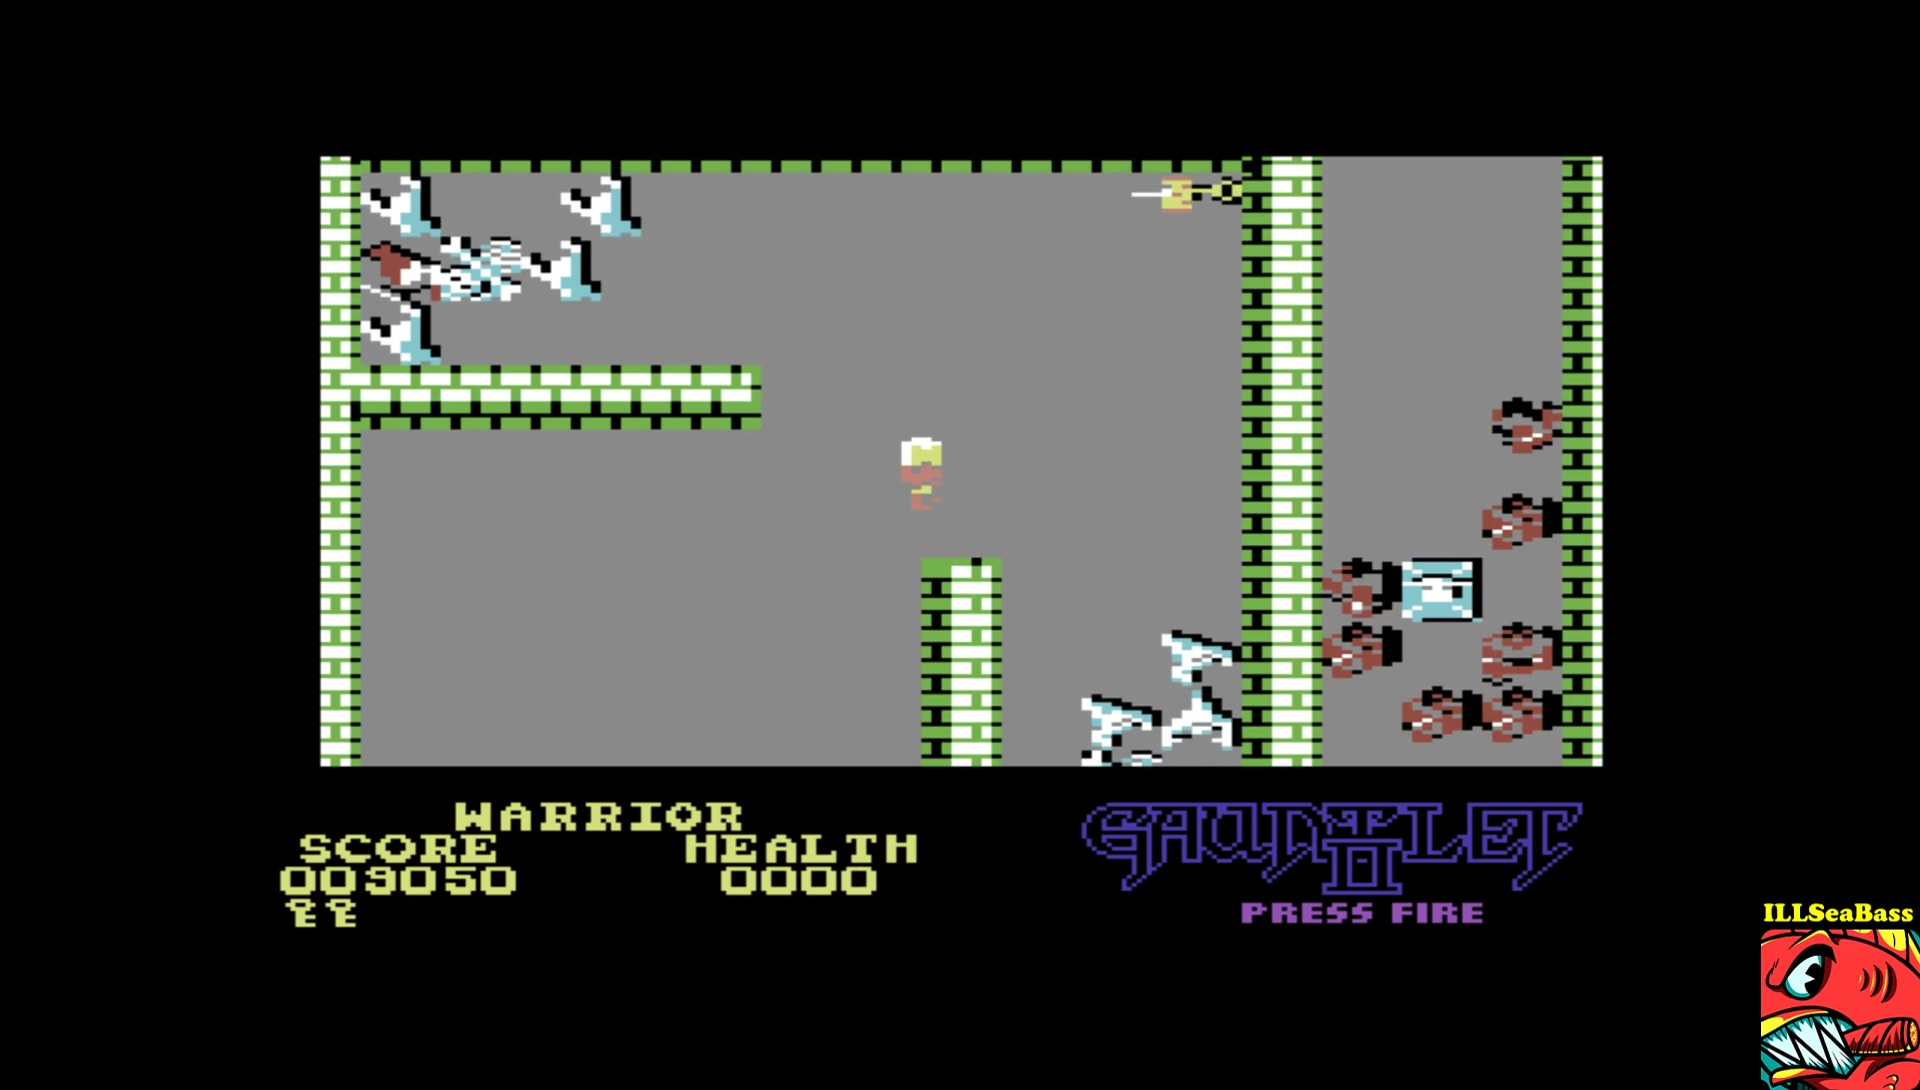 ILLSeaBass: Gauntlet II (Commodore 64 Emulated) 9,050 points on 2017-06-12 22:09:09